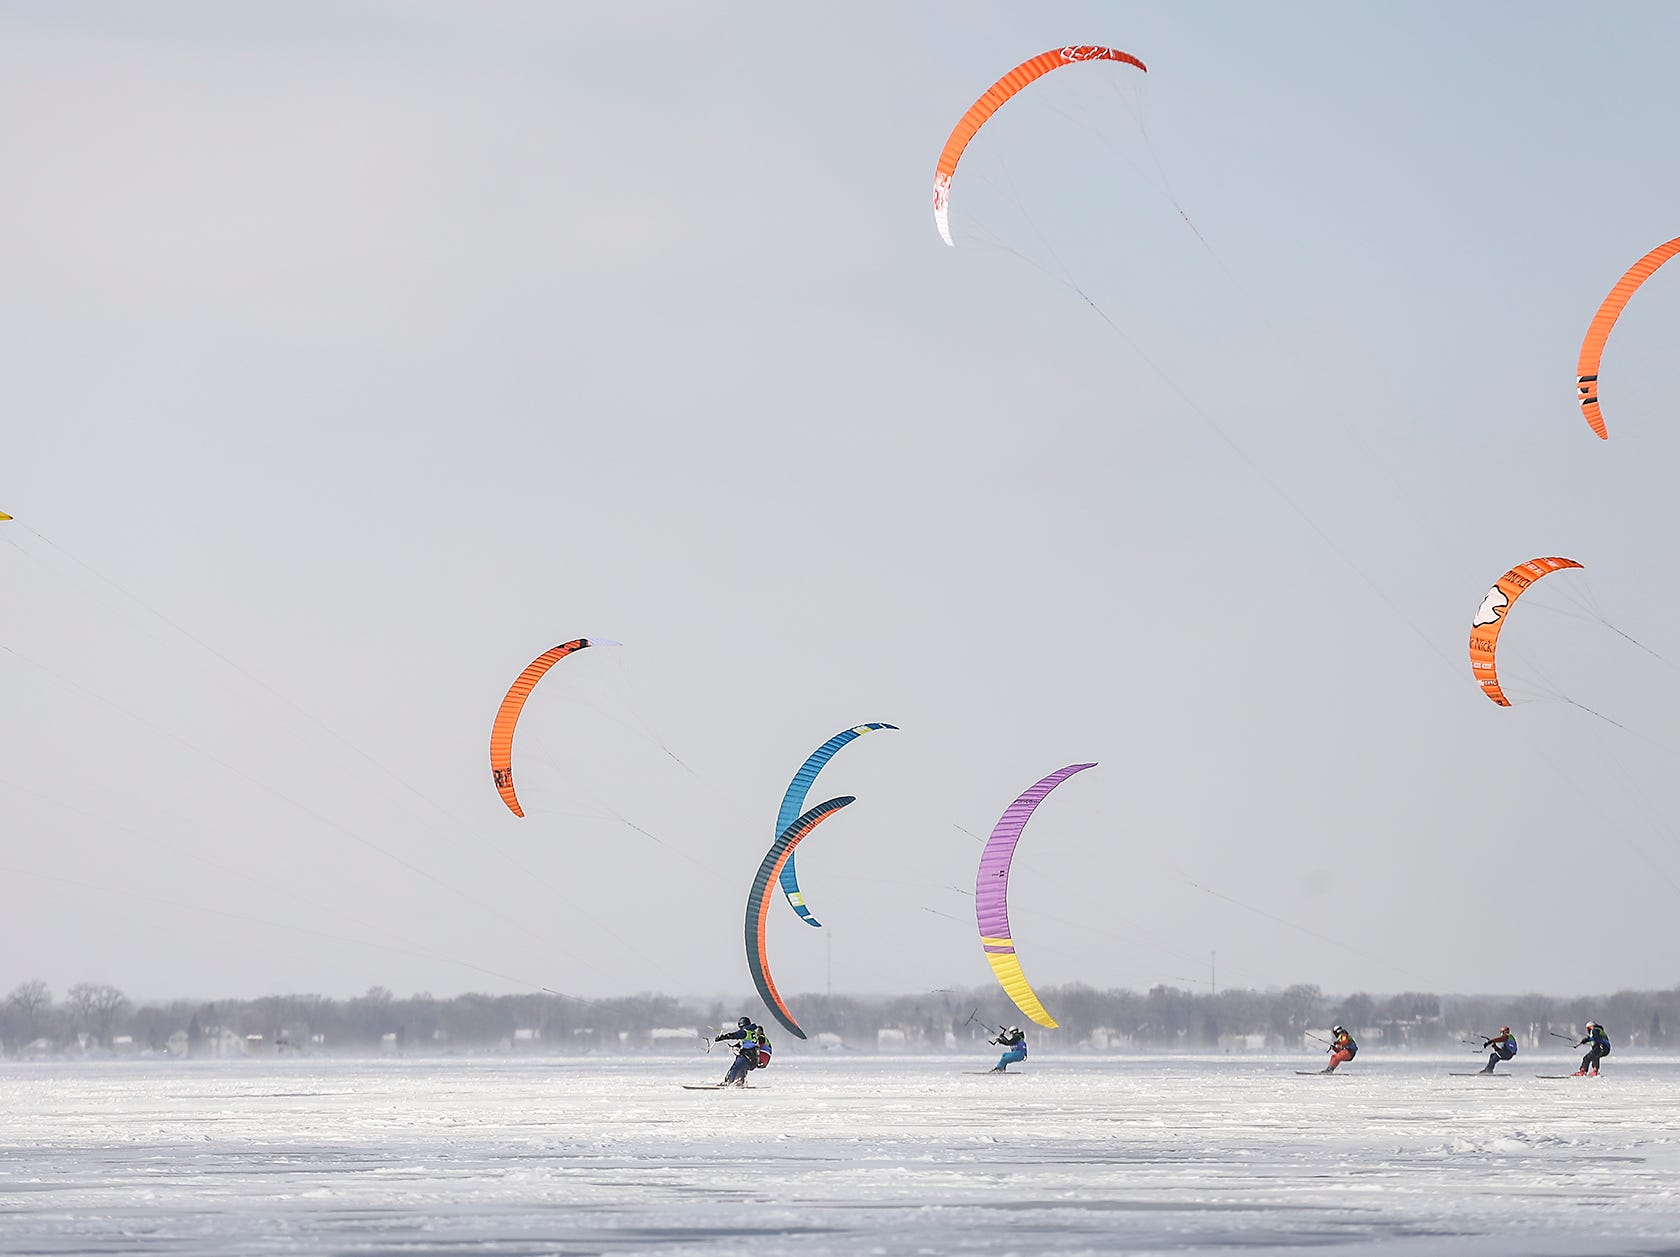 Ice sailers race Friday, February 8, 2019 on Lake Winnebago during Sturgeon Spectacular. Sturgeon Spectacular is a weeklong celebration of the lake sturgeon spearing season and includes events on and off the ice in the Fond du Lac area. Doug Raflik/USA TODAY NETWORK-Wisconsin